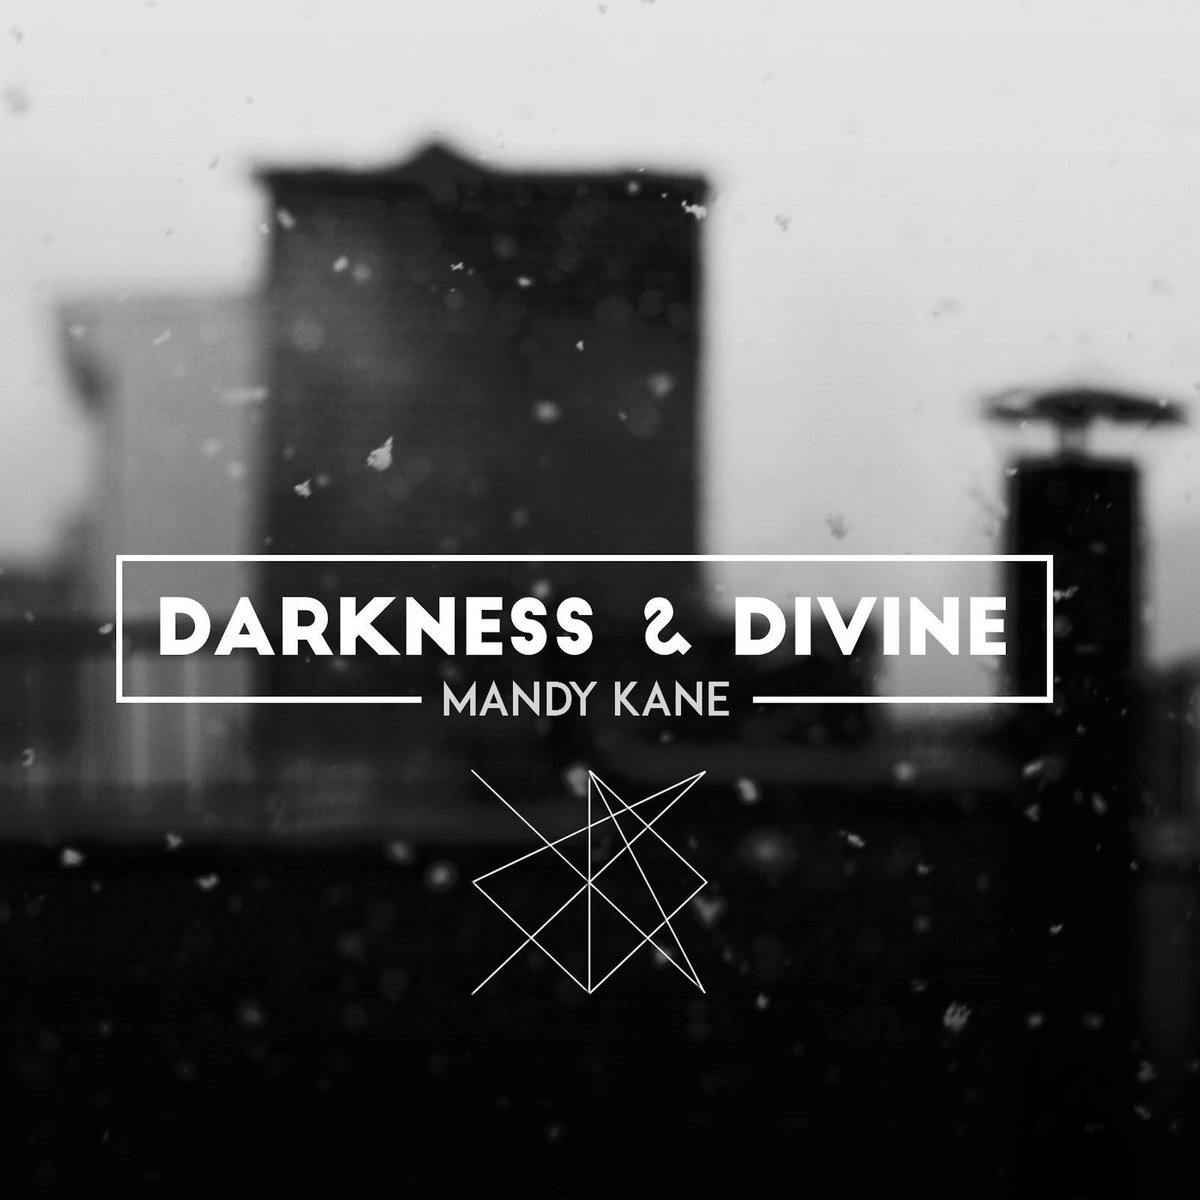 Darkness divine mandy kane by mandy kane stopboris Image collections